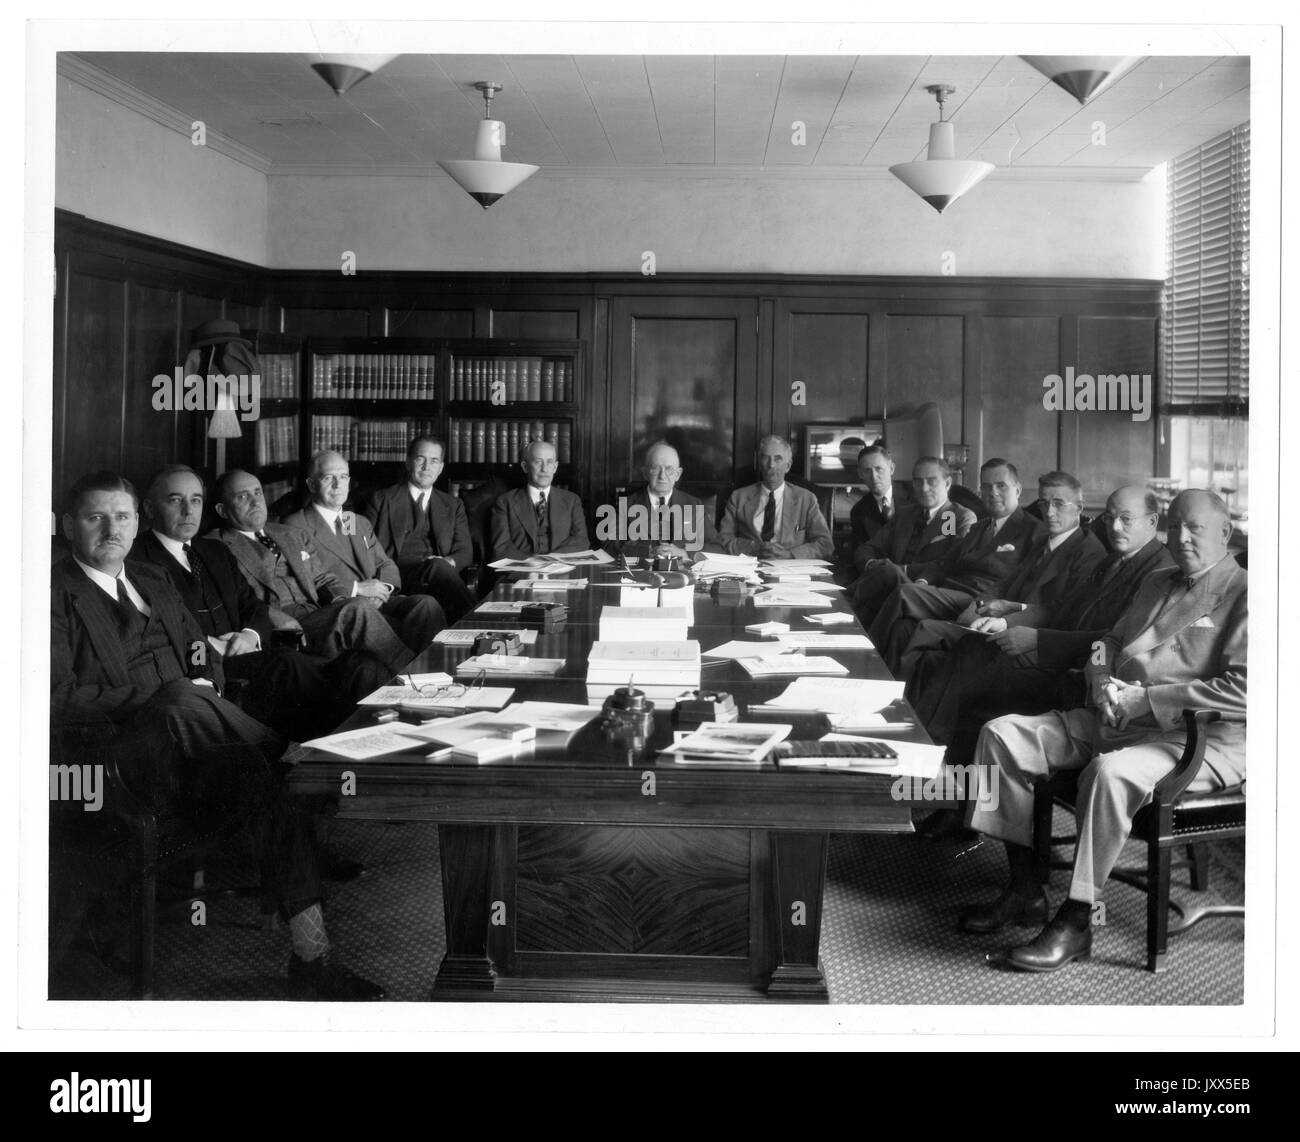 Joseph Sweetman Ames, National Advisory Committee for Aeronautics, Orville Wright, Vannevar Bush, National Advisory Committee for Aeronautics at table with Ames at head, Orville Wright sixth from left, Vannevar Bush third from right, 1938. - Stock Image